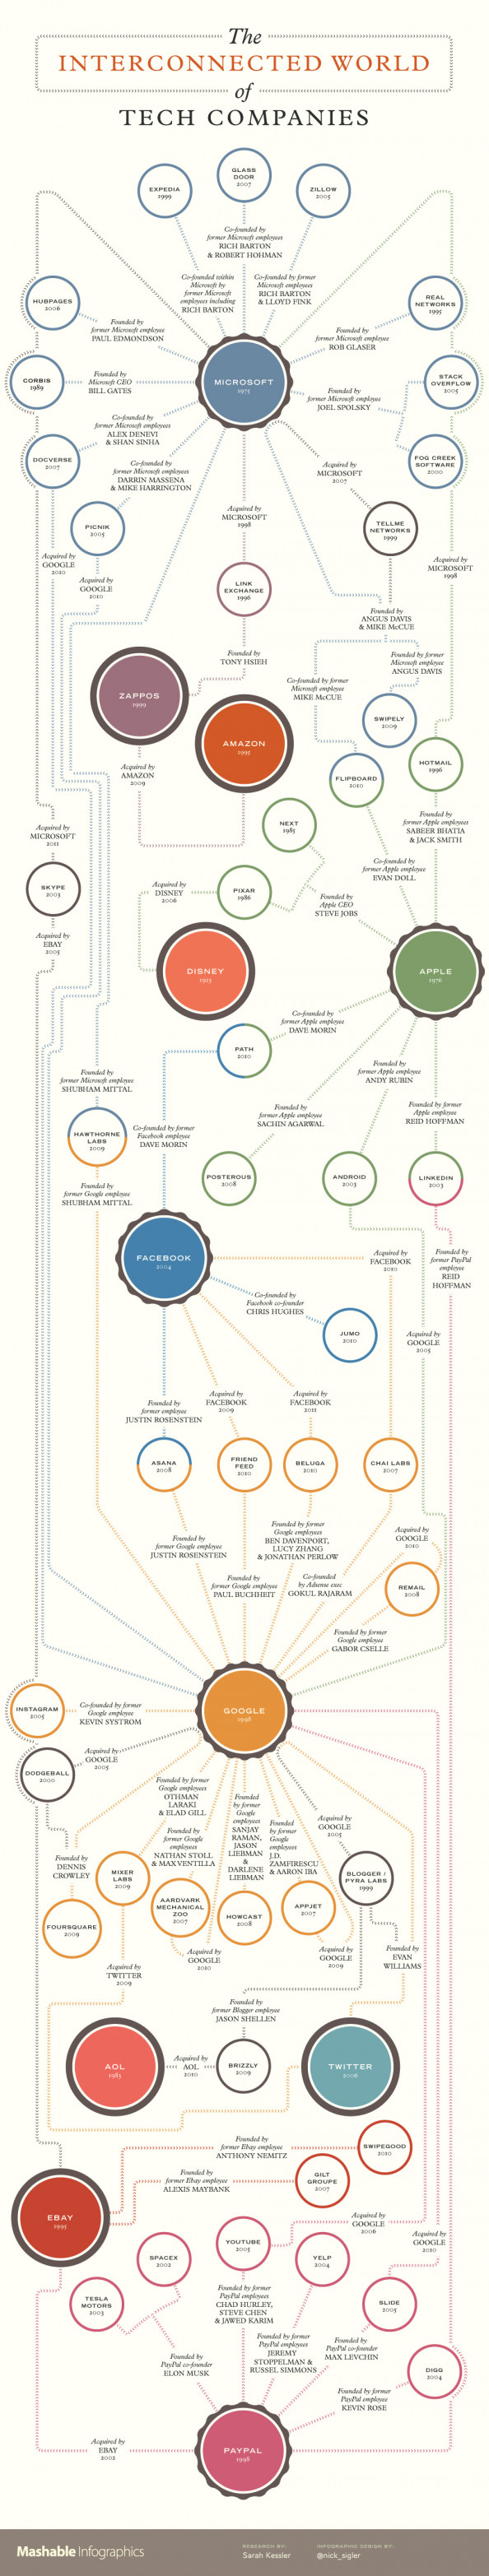 The Interconnected World of Tech Companies Infographic